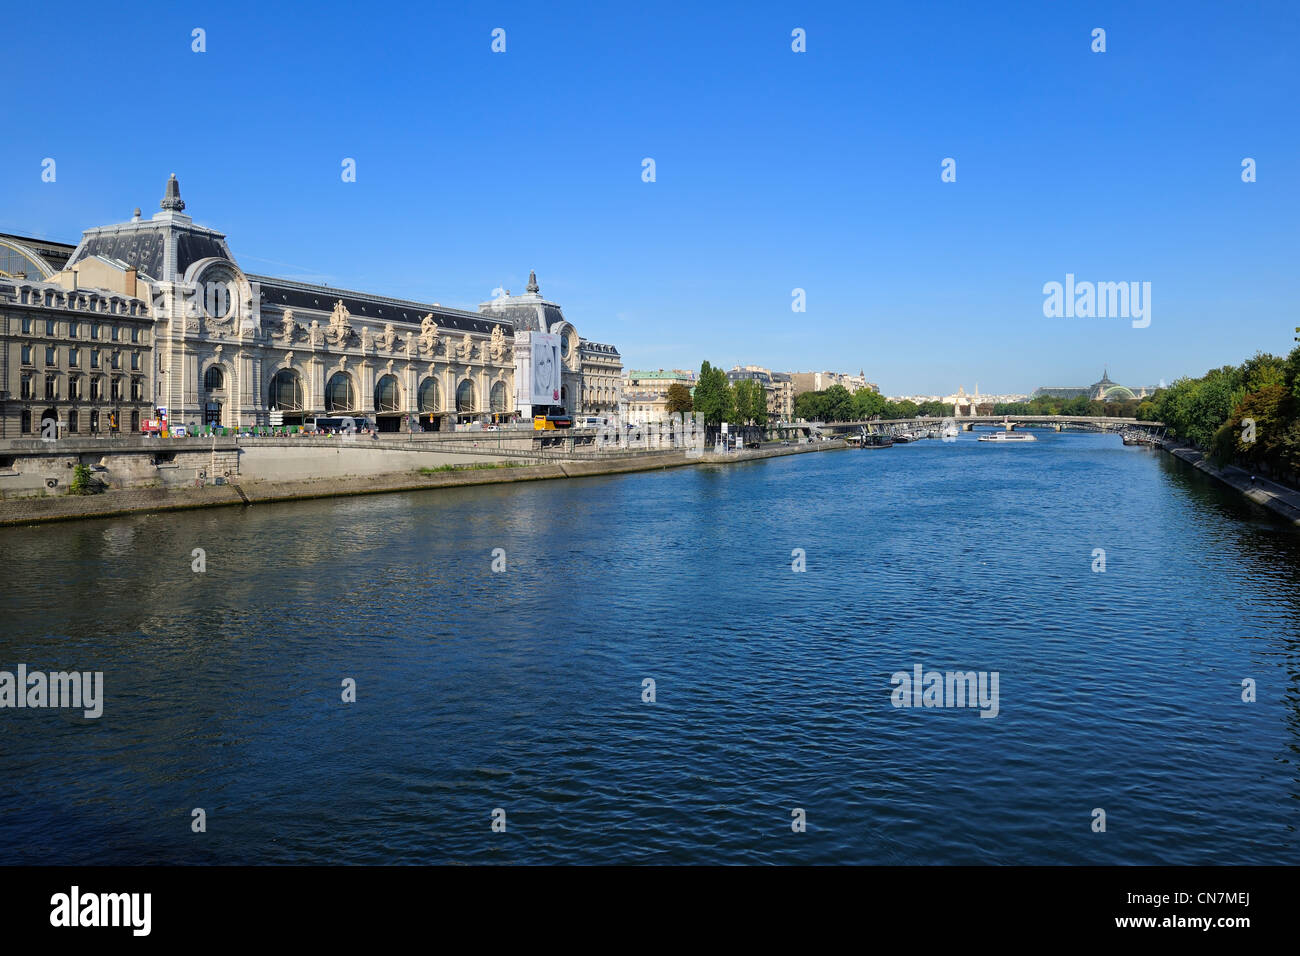 France, Paris, Left Bank, Orsay Museum, housed in the Gare d'Orsay, former railway station (1898) - Stock Image